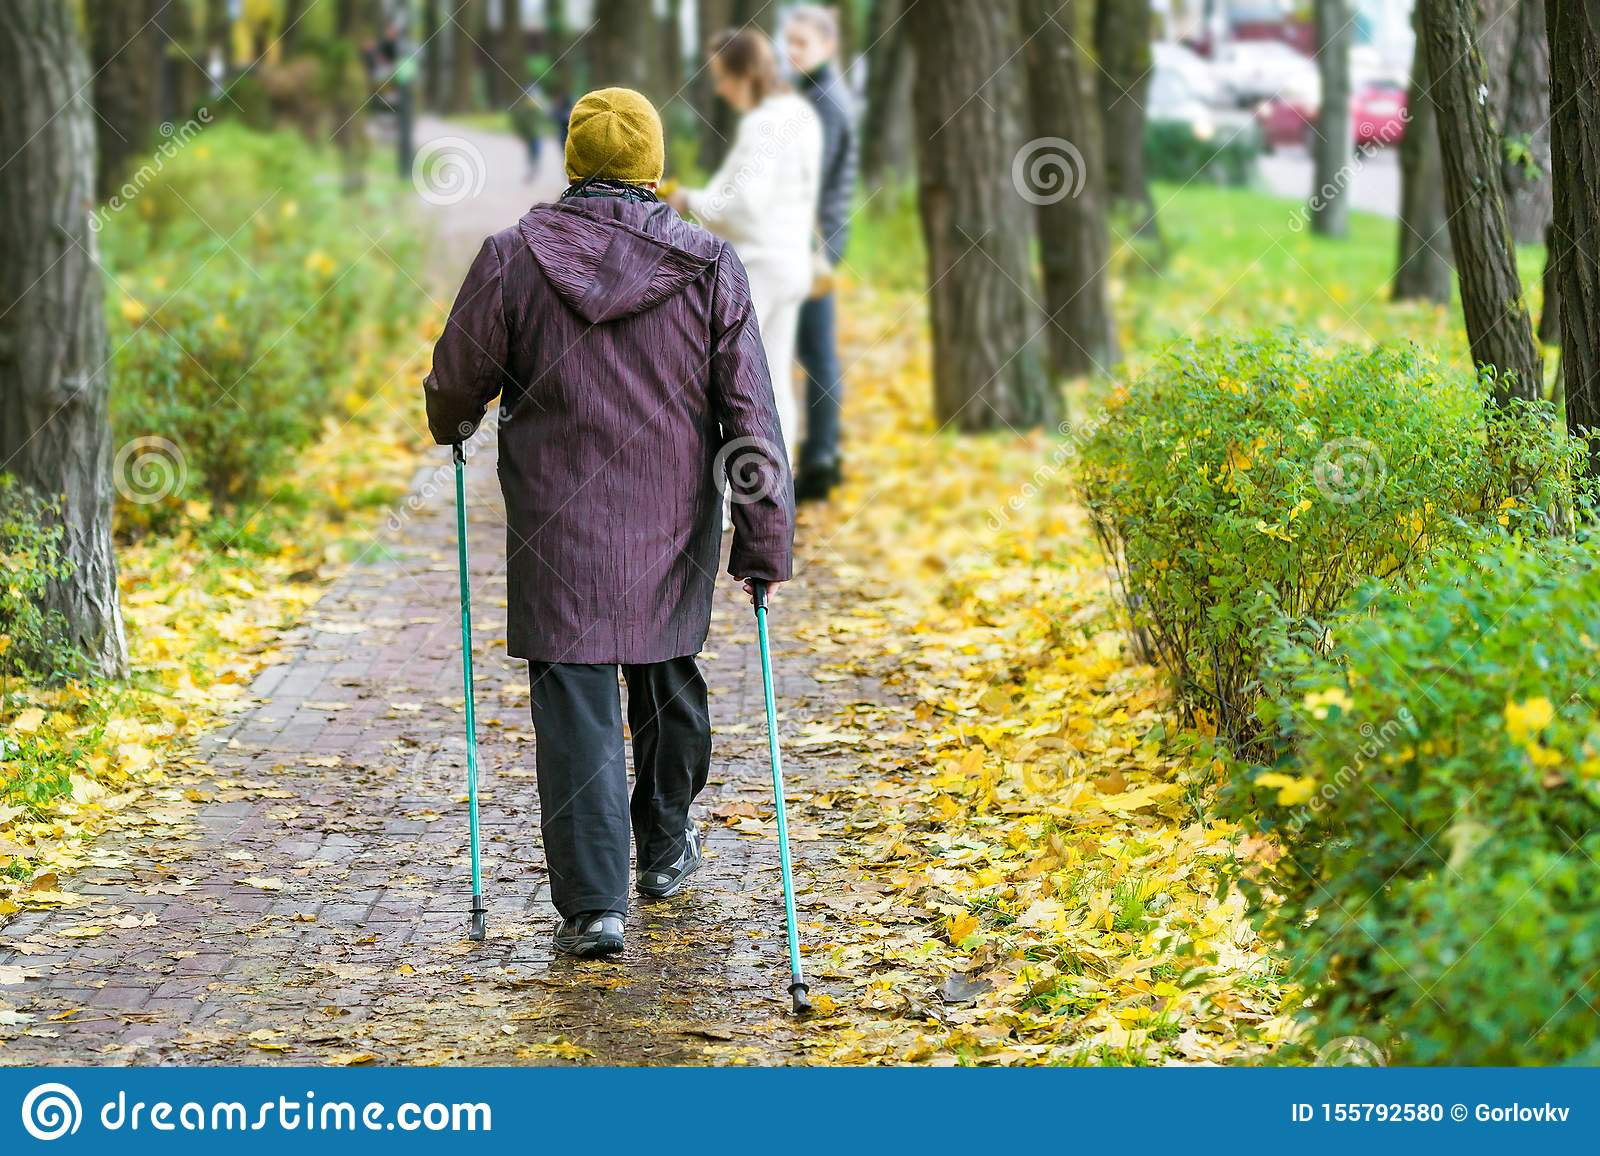 Senior woman enjoying nordic walking at beautiful colorful autumn park. Old age person doing pole walk excercise